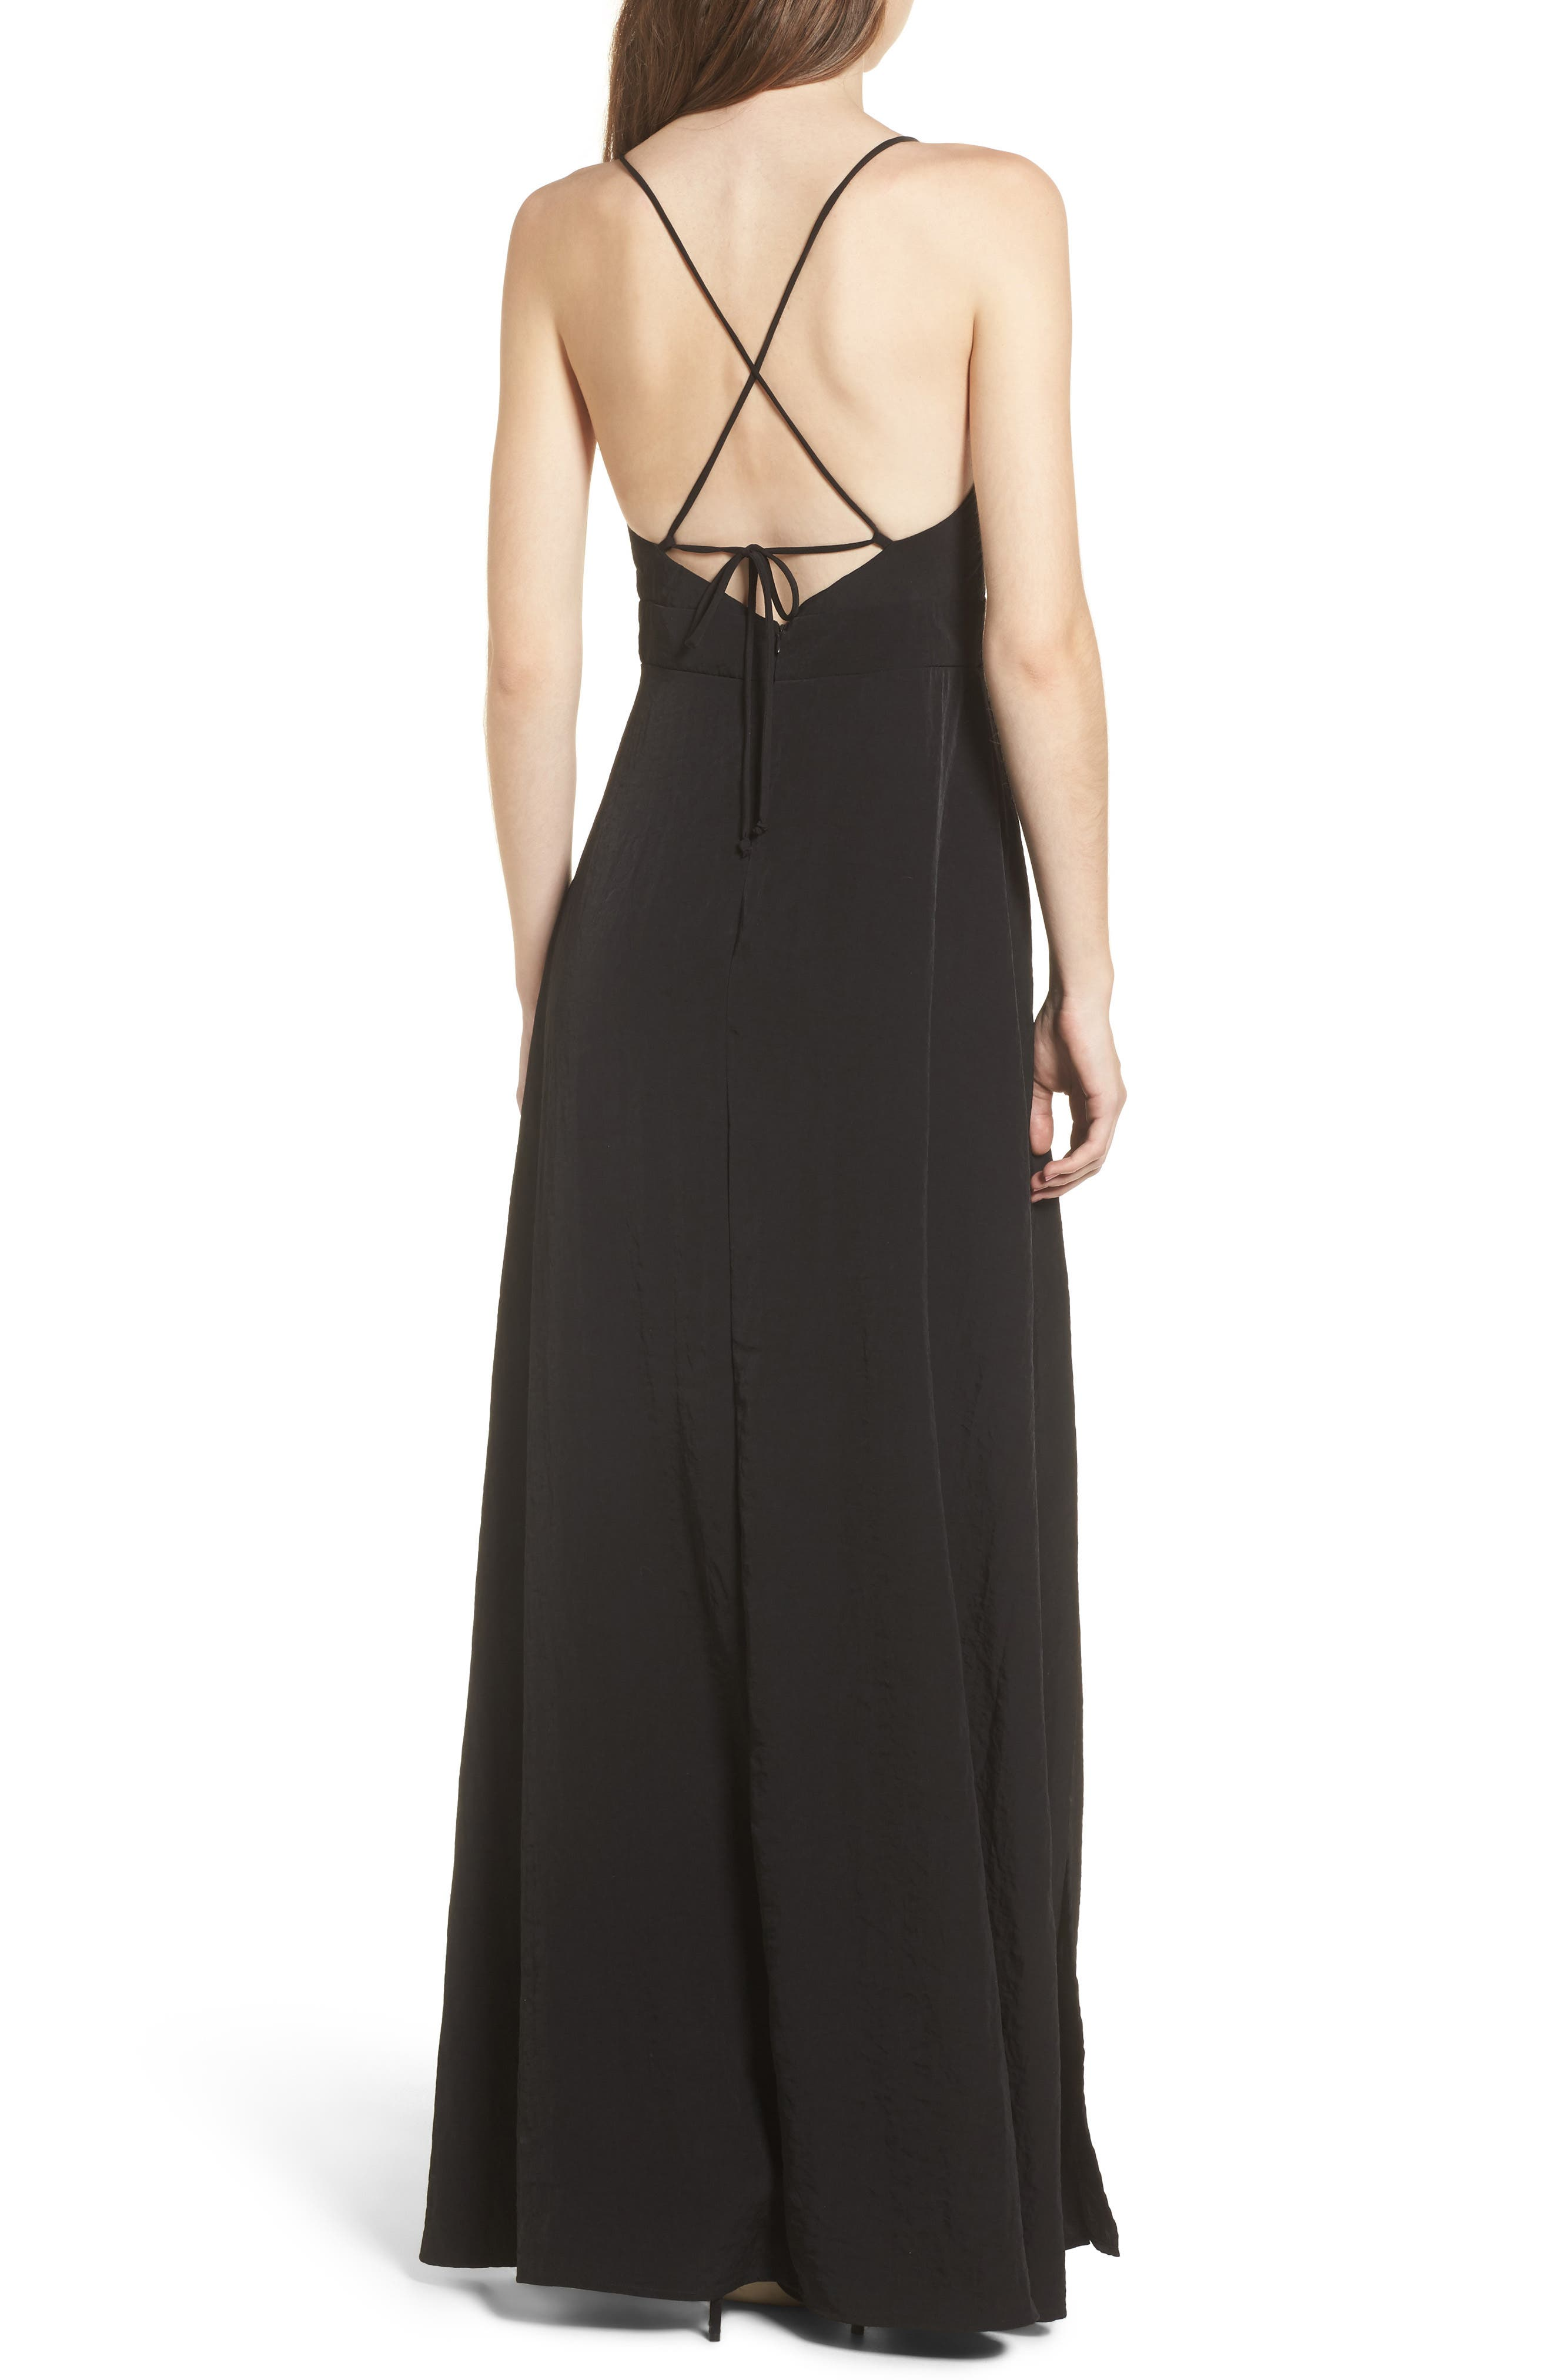 Cowl Neck Maxi Dress,                             Alternate thumbnail 2, color,                             001